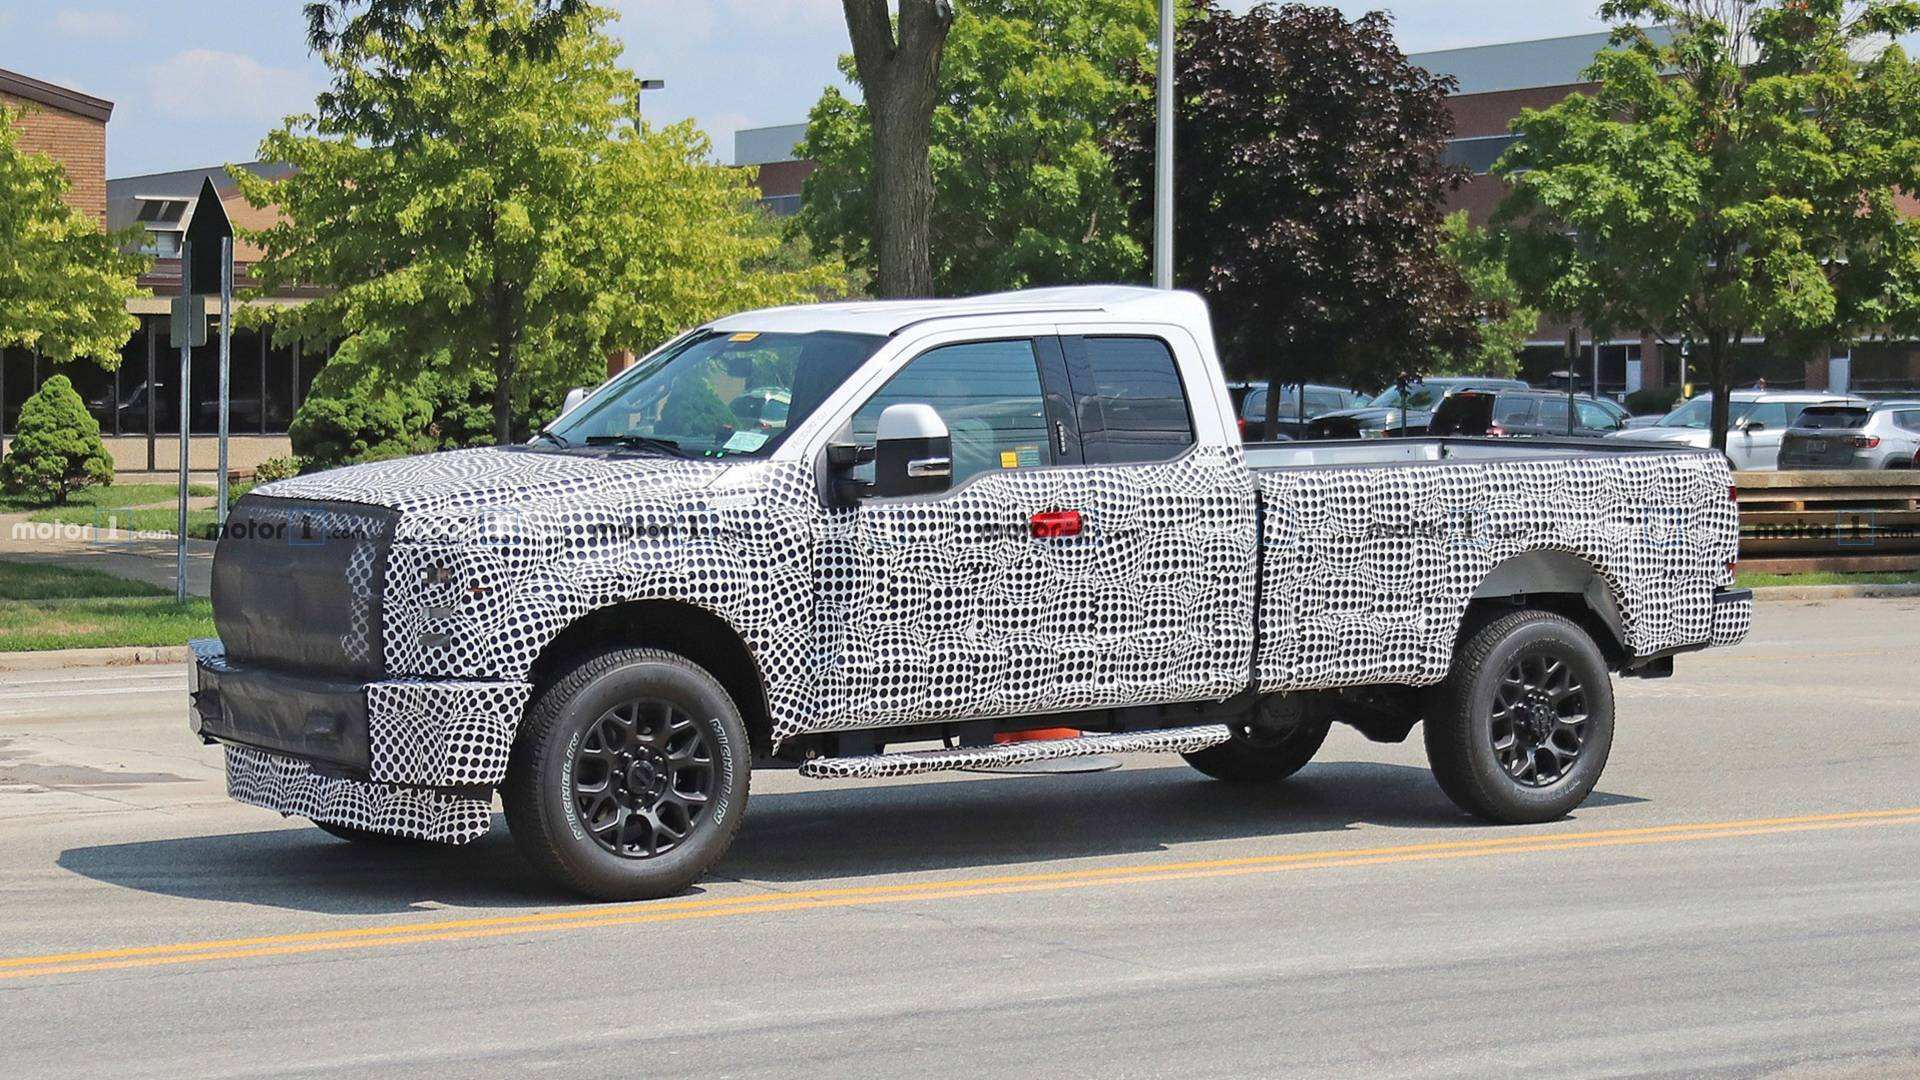 80 New 2020 Spy Shots Ford F350 Diesel Performance And New Engine